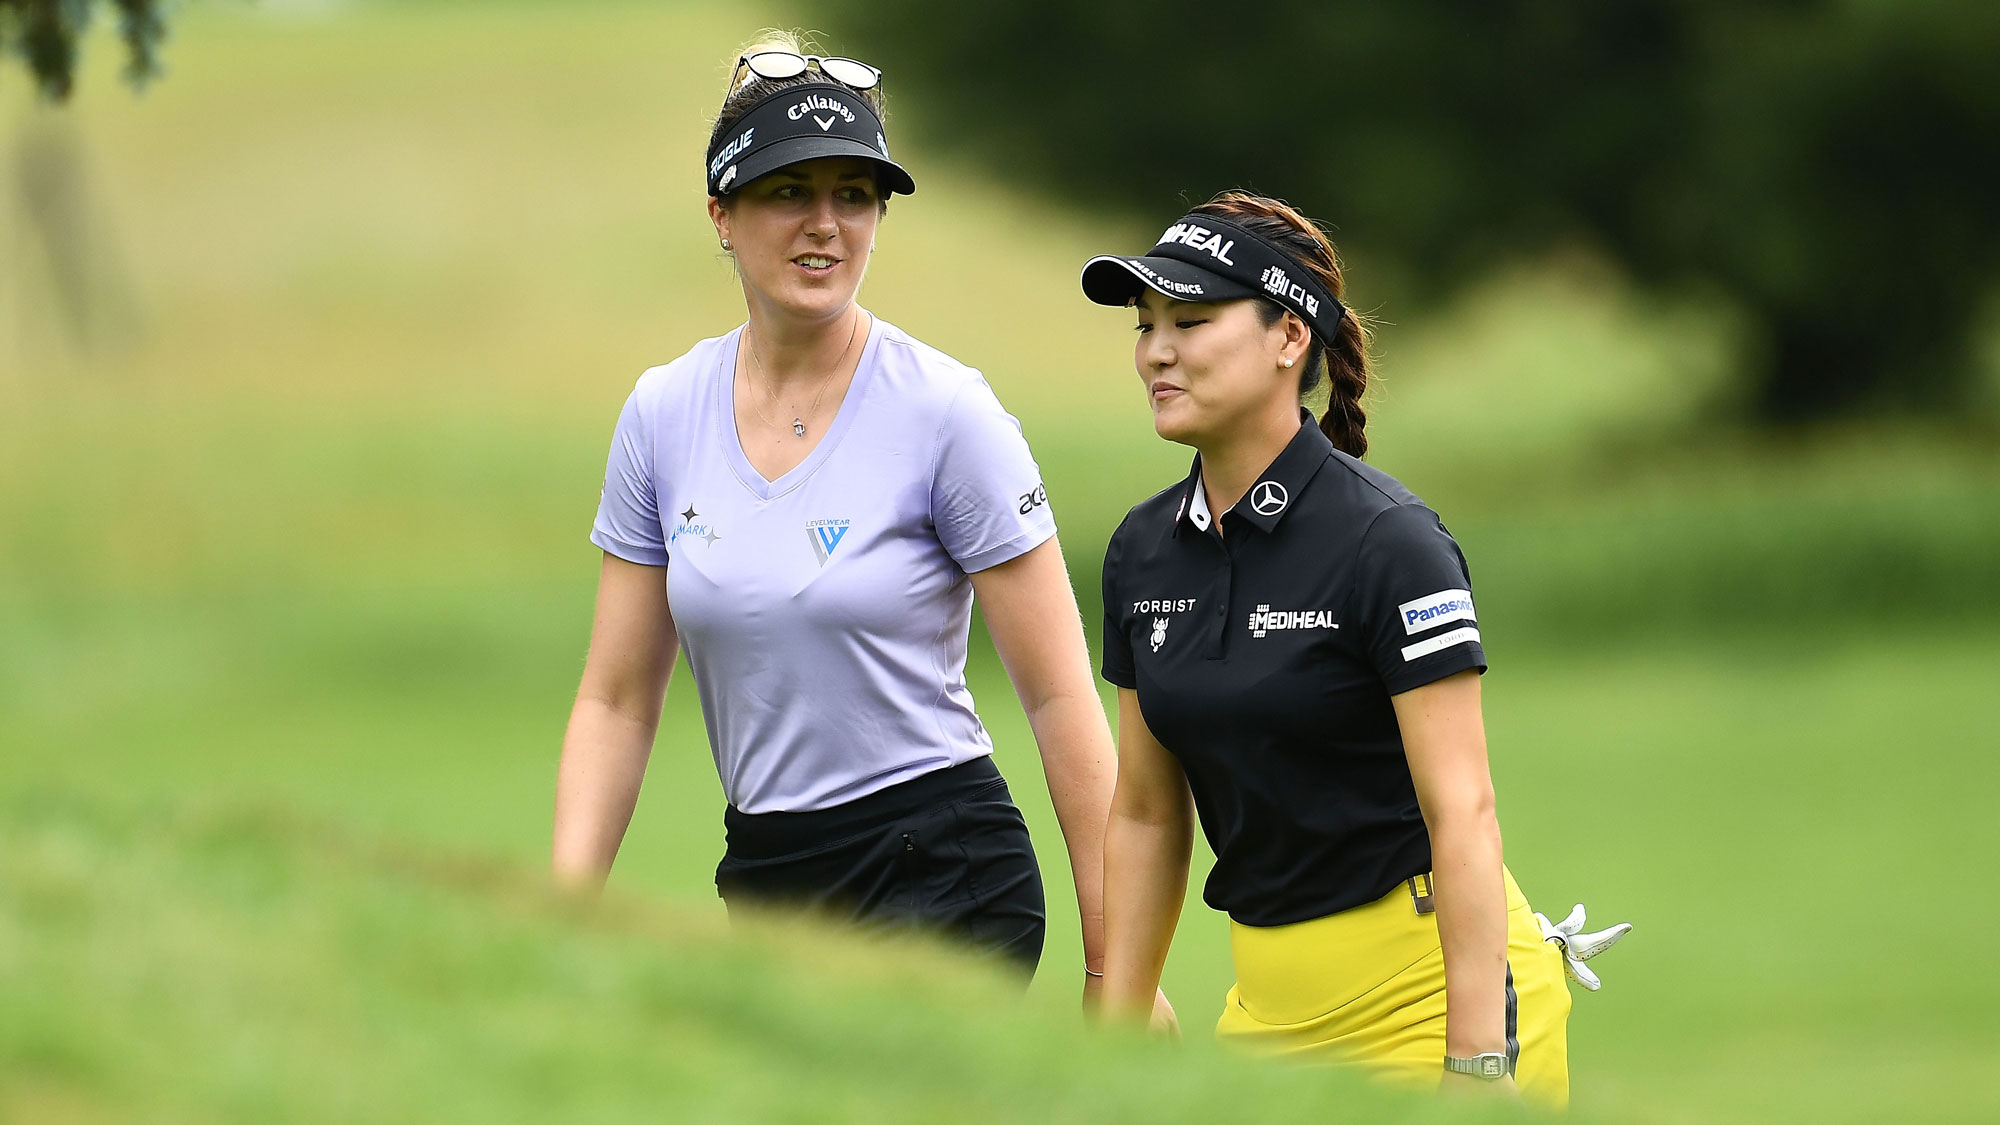 Sandra Gal and So Yeon Ryu Share a Laugh at Meijer LPGA Classic